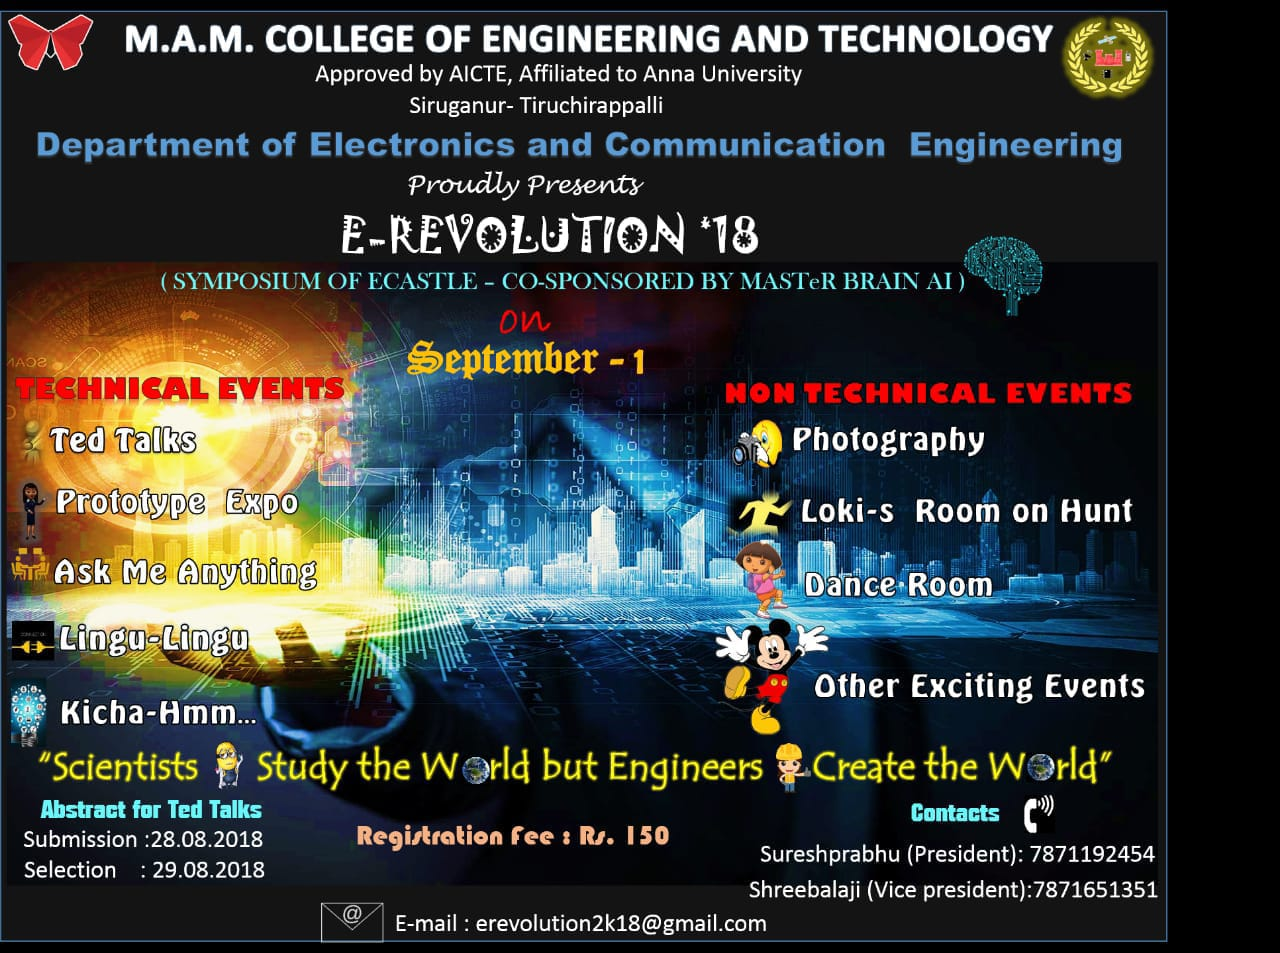 MAMCET: M A M  College of Engineering and Technology